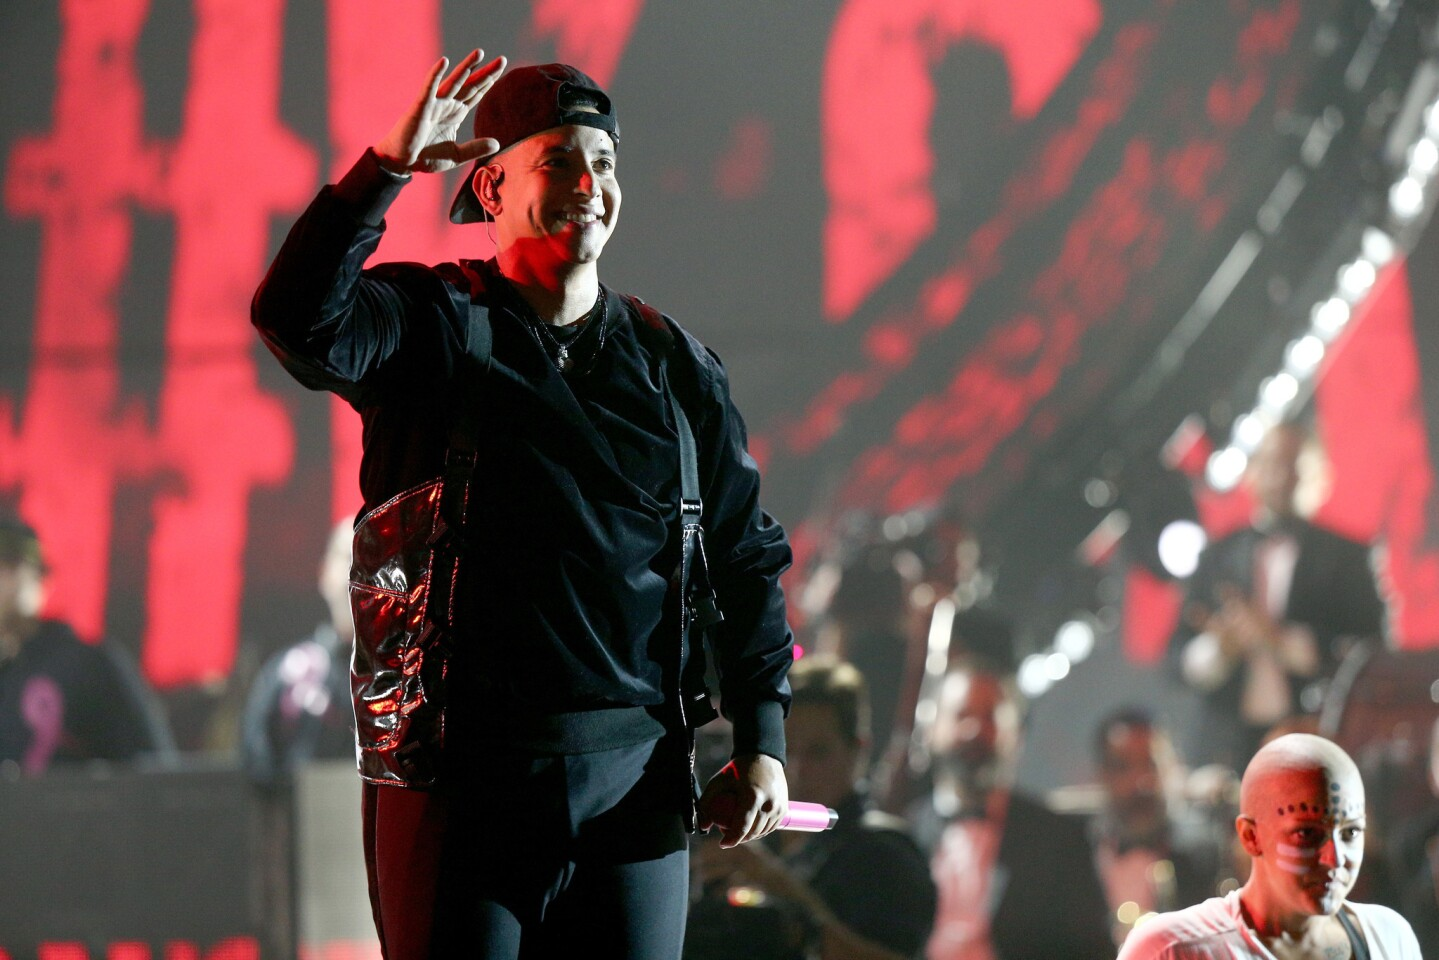 HOLLYWOOD, CA - OCTOBER 25: Daddy Yankee performs onstage during the 2018 Latin American Music Awards at Dolby Theatre on October 25, 2018 in Hollywood, California. (Photo by Rich Fury/Getty Images) ** OUTS - ELSENT, FPG, CM - OUTS * NM, PH, VA if sourced by CT, LA or MoD **